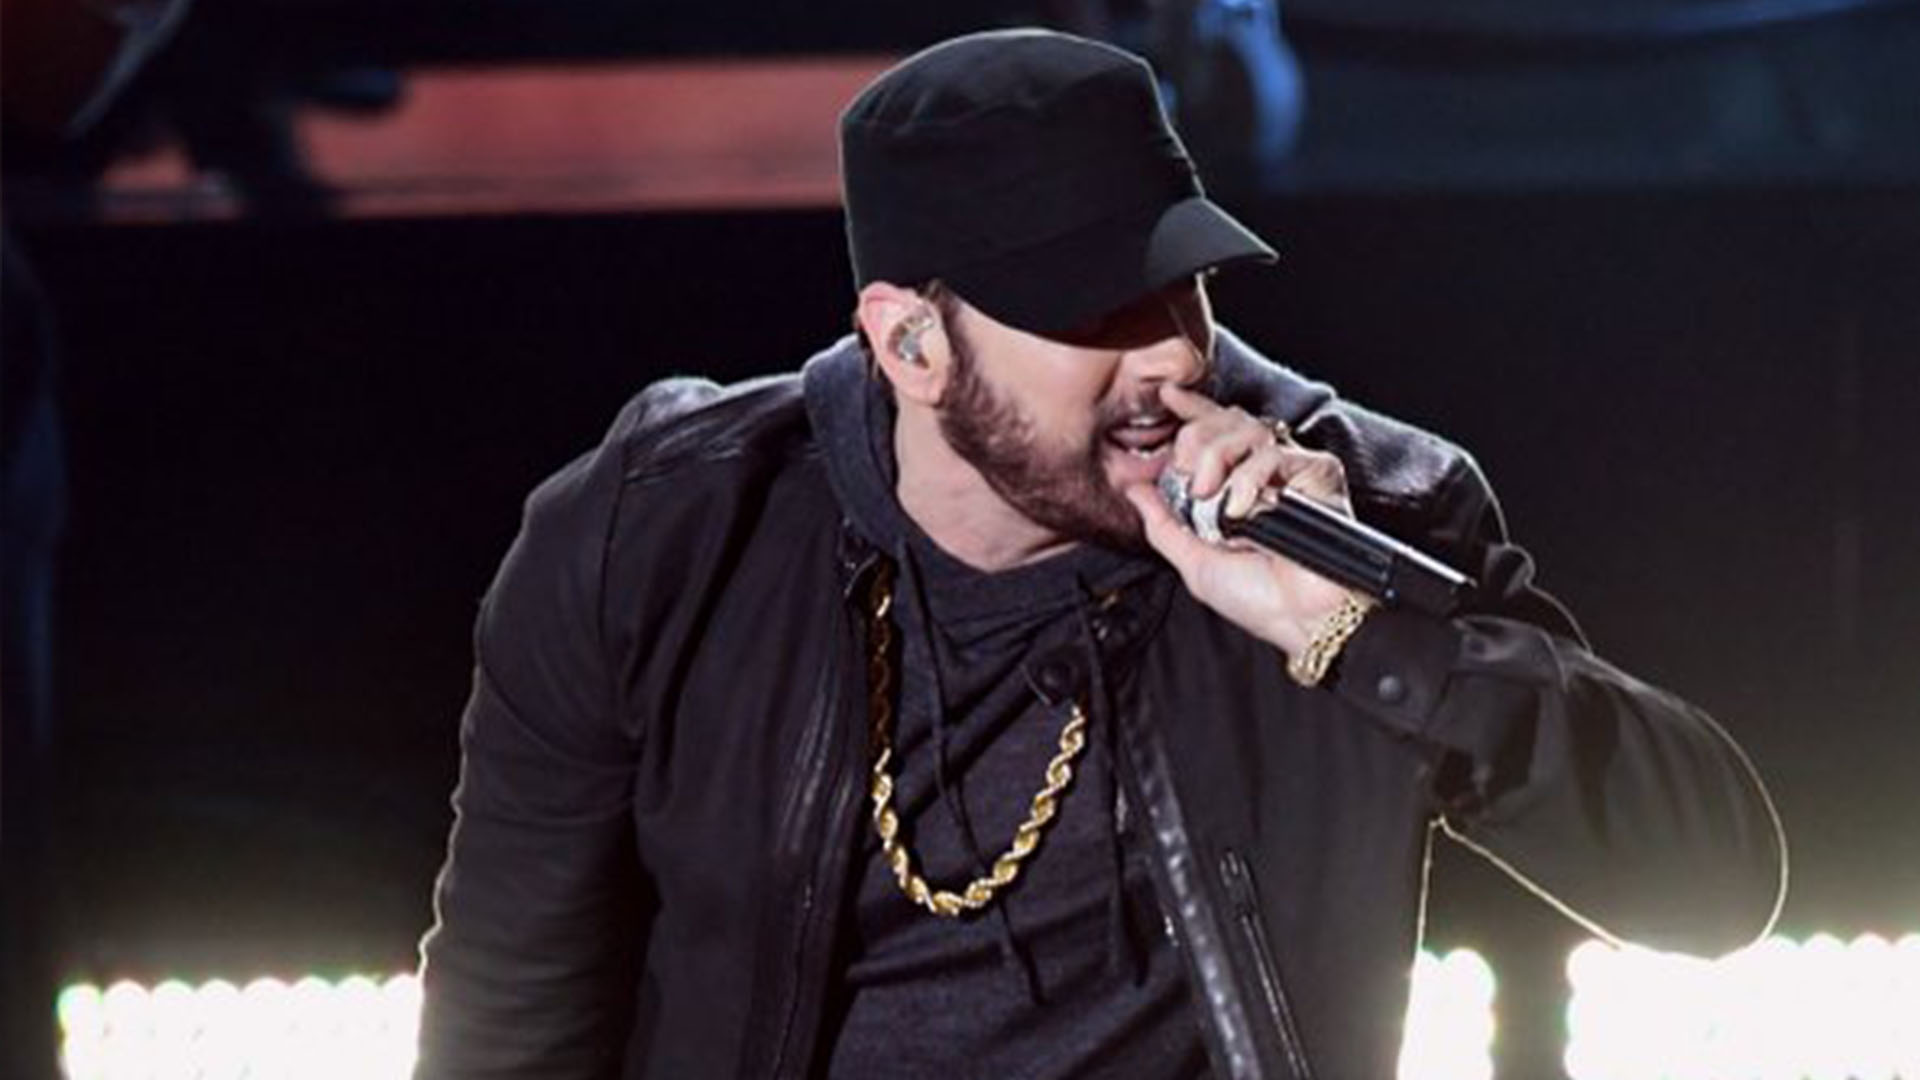 Eminem hit the Oscars stage to perform